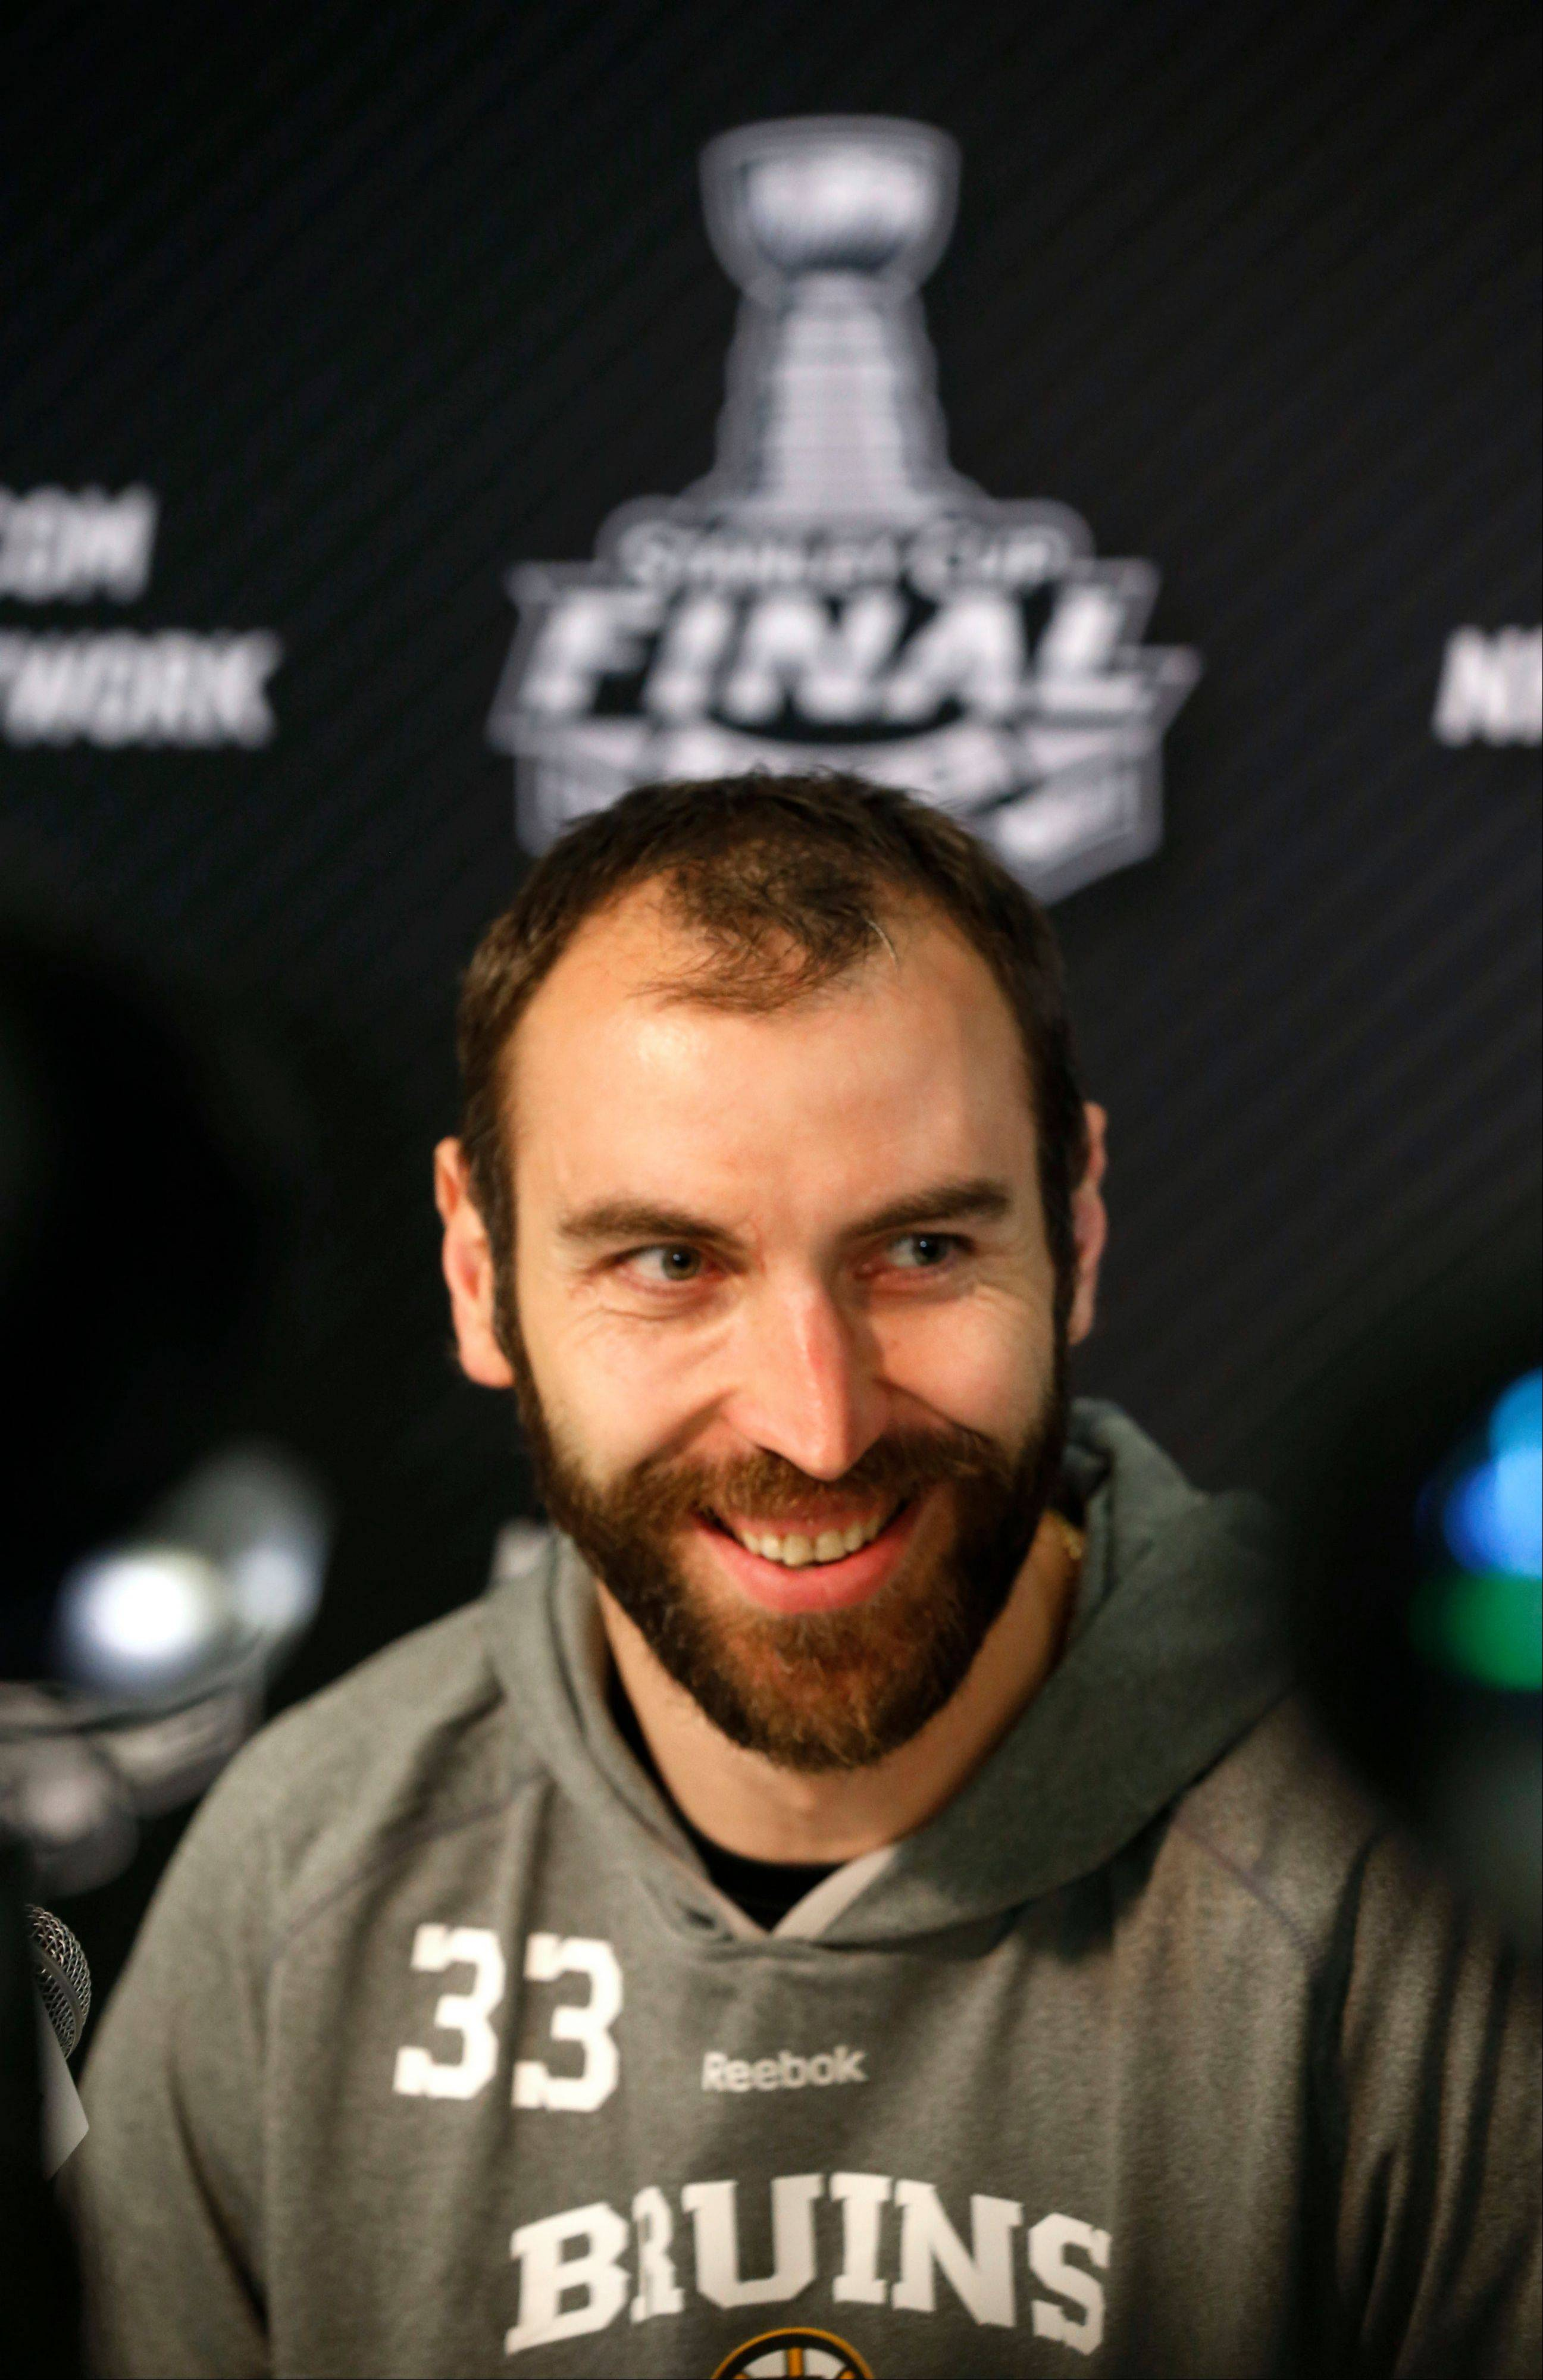 Bruins defenseman Zdeno Chara stands nearly 7 feet tall on skates and will be a huge obstacle for the Blackhawks to overcome in the Stanley Cup Finals.